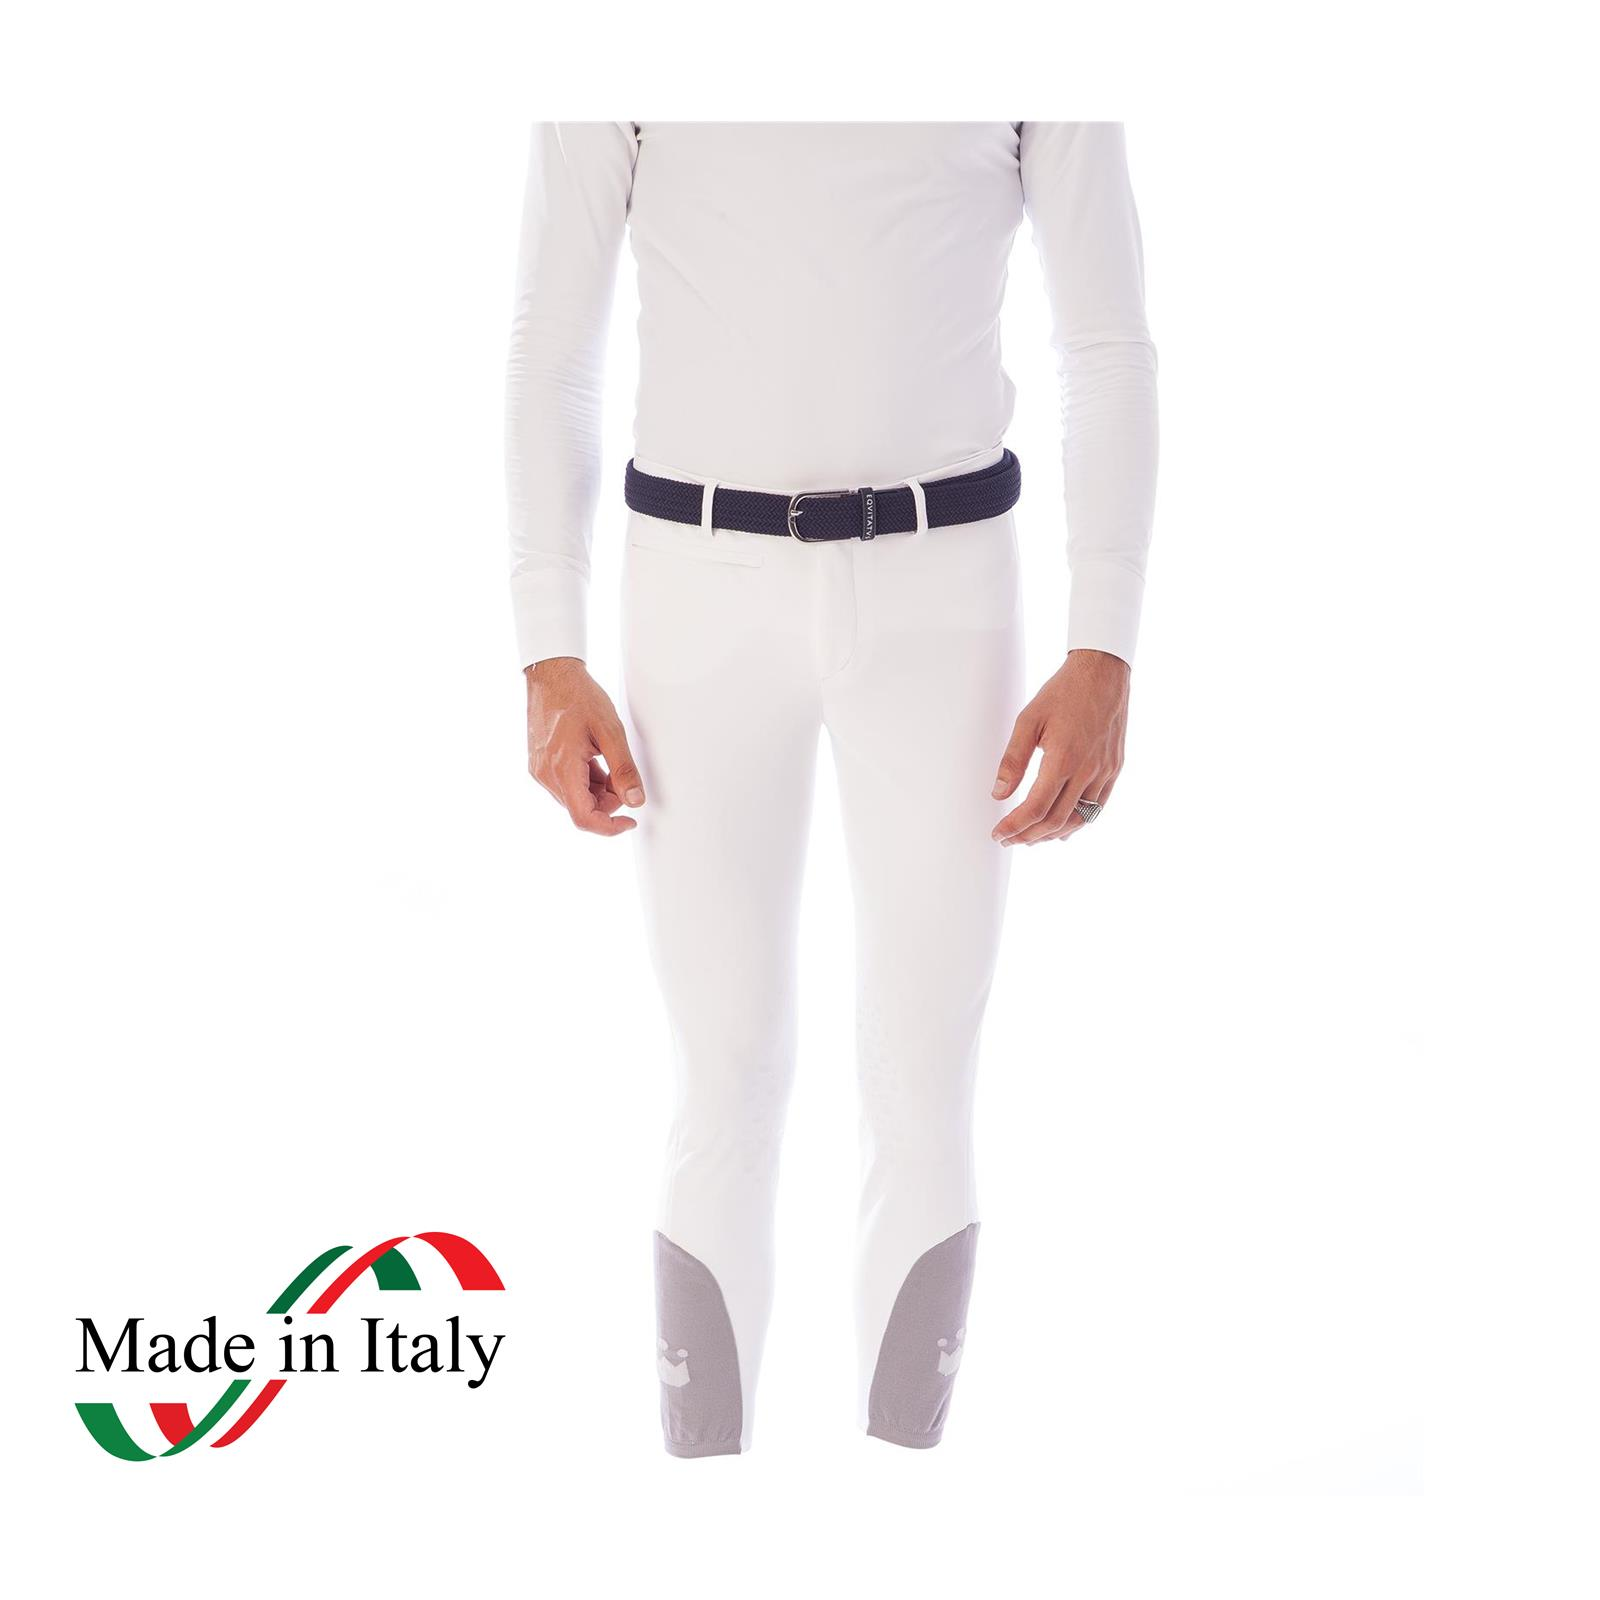 EQUITATUS.IT PANTALONE UOMO NEW EDITION